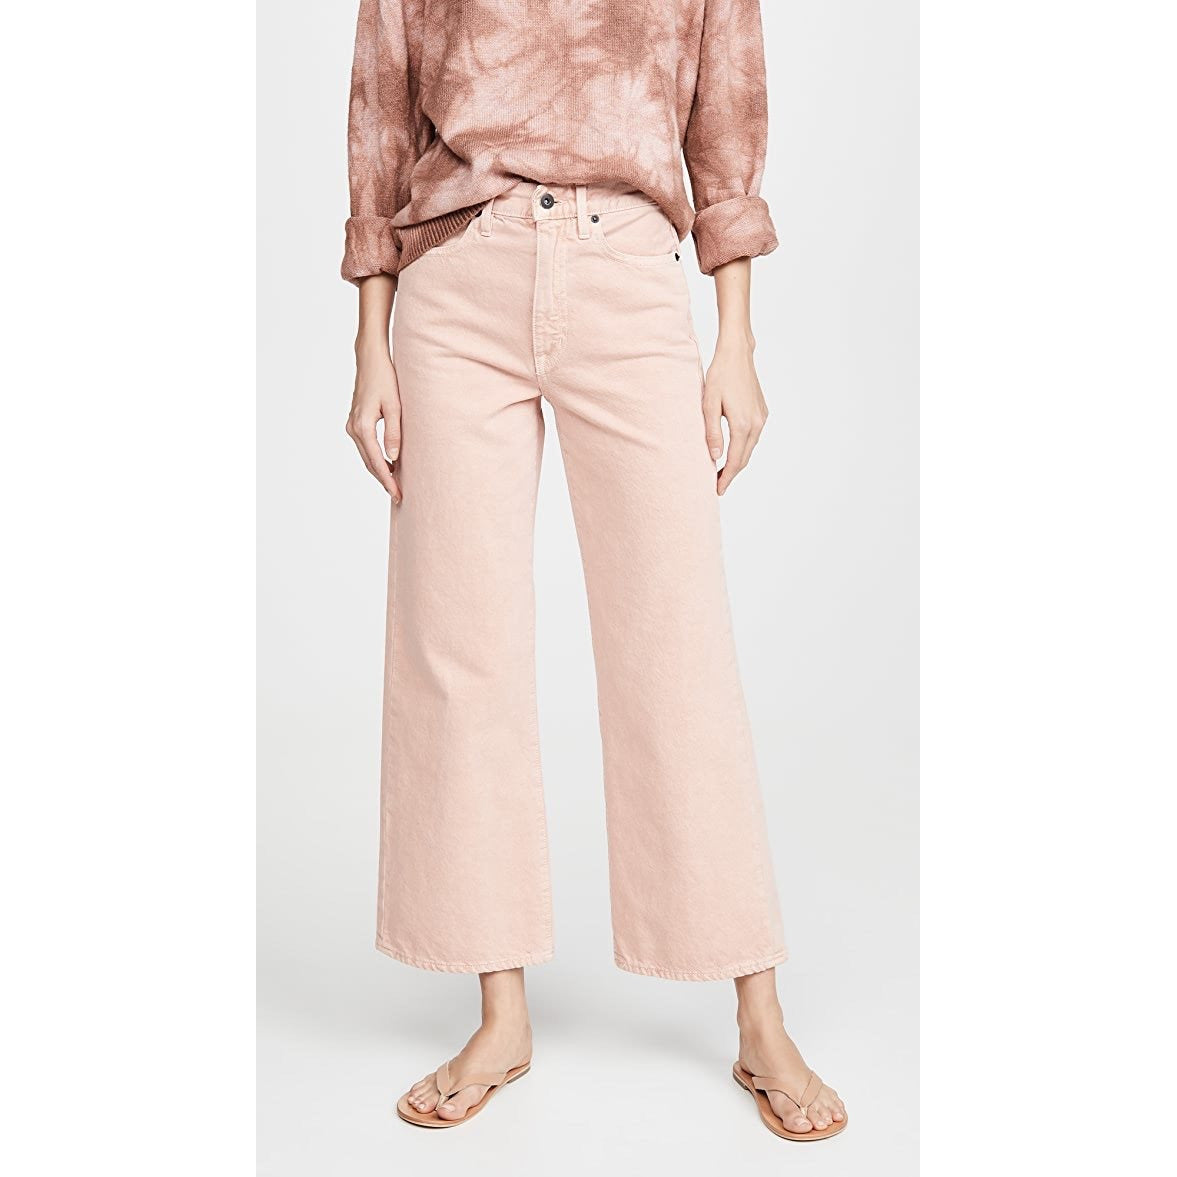 Grace frayed high-rise flared jeans in Dusty Pink